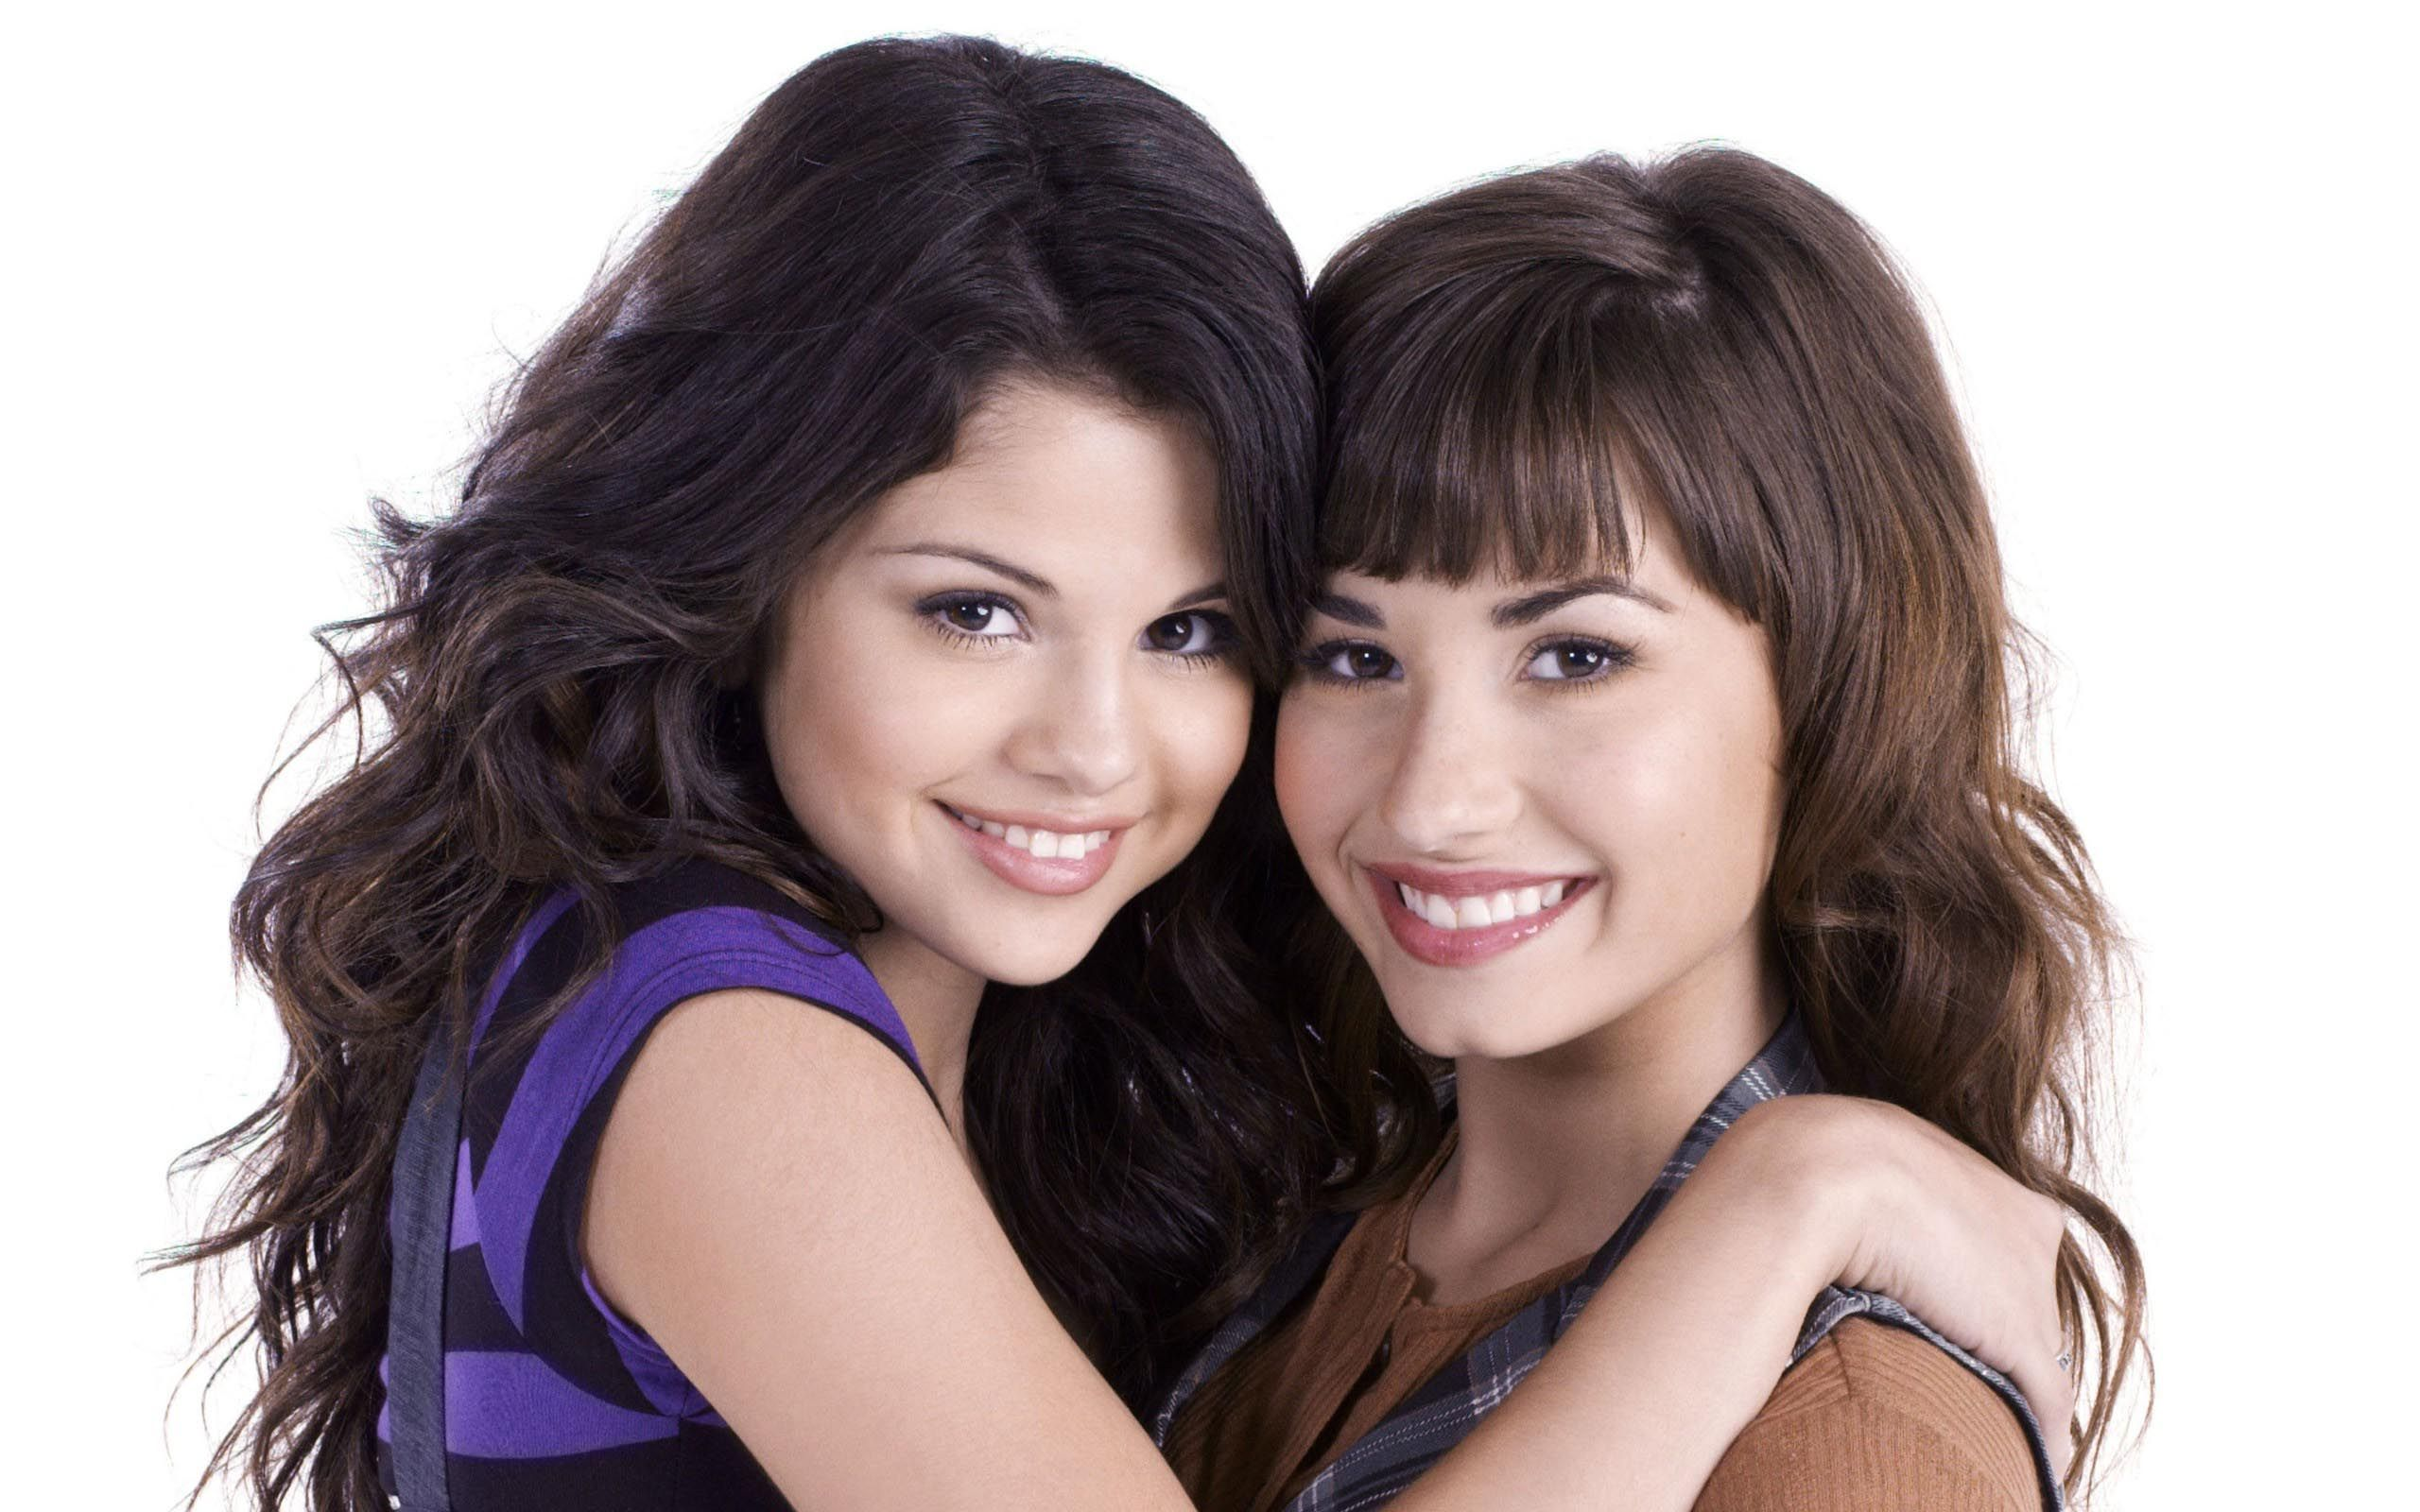 Demi Lovato With Selena Gomez Free Hd Wallpaper Nice Hd Wallpapers Demi Lovato Selena Gomez Lovato